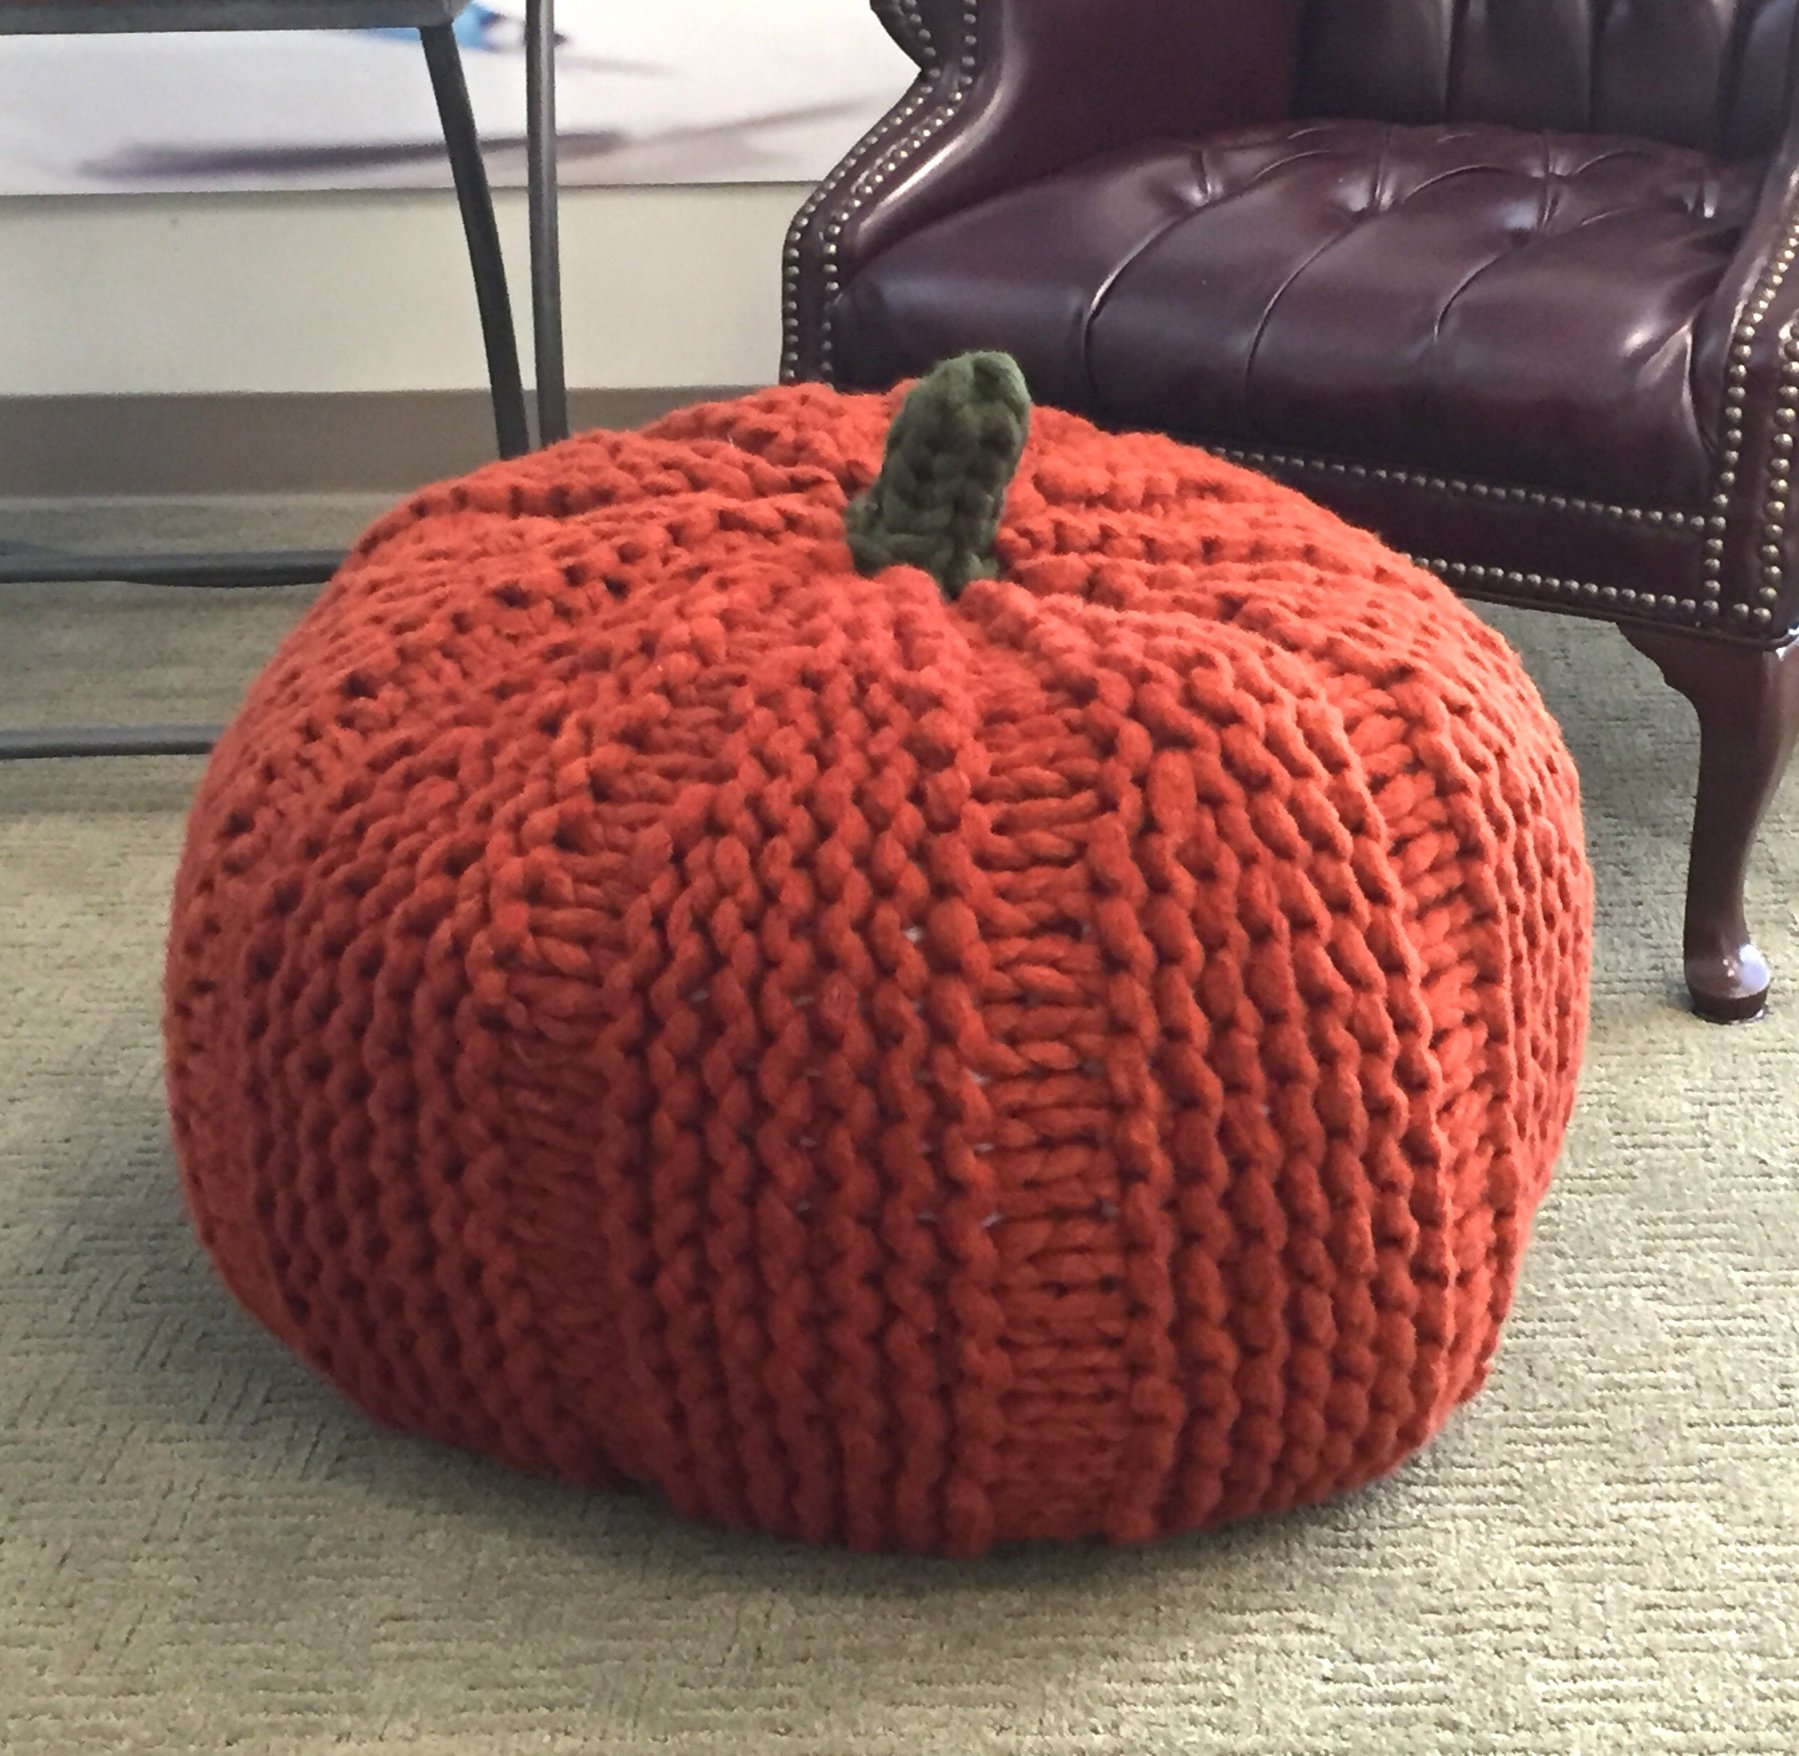 10 Floor Pouf Free Knitting Pattern and Paid - Page 2 of 2